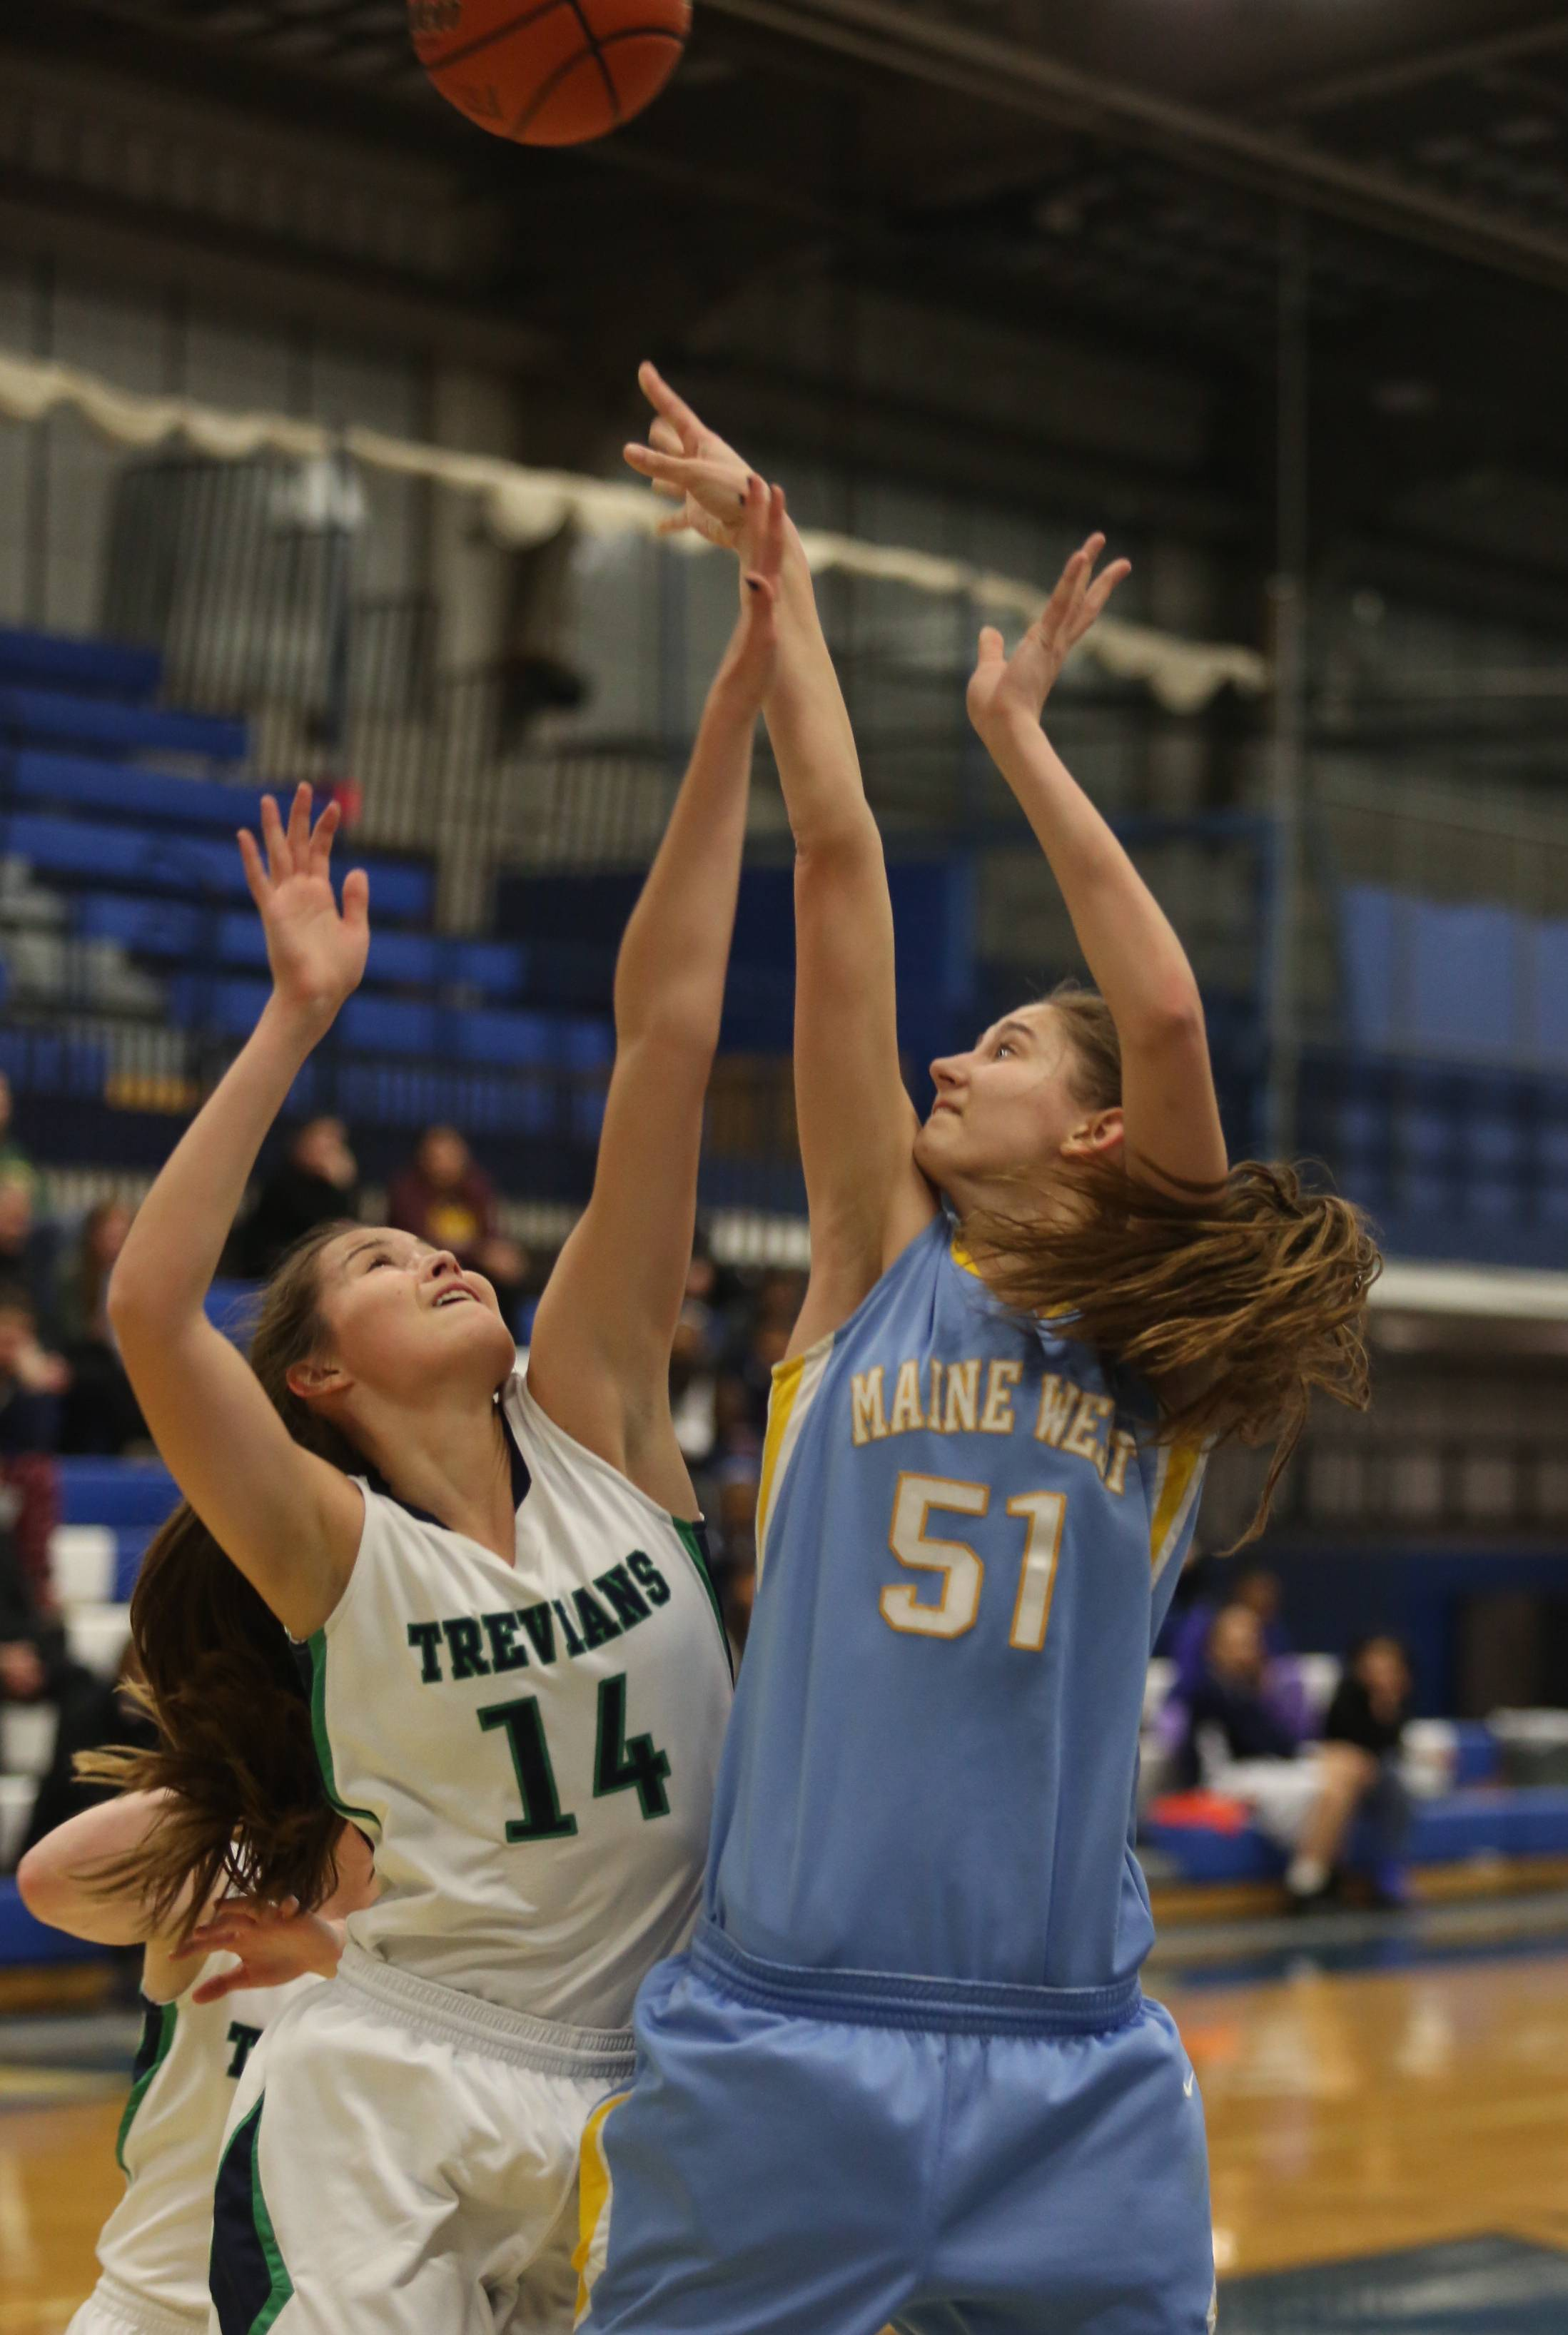 Images from the Maine West vs. New Trier girls basketball game on Monday, February 24 in Park Ridge.